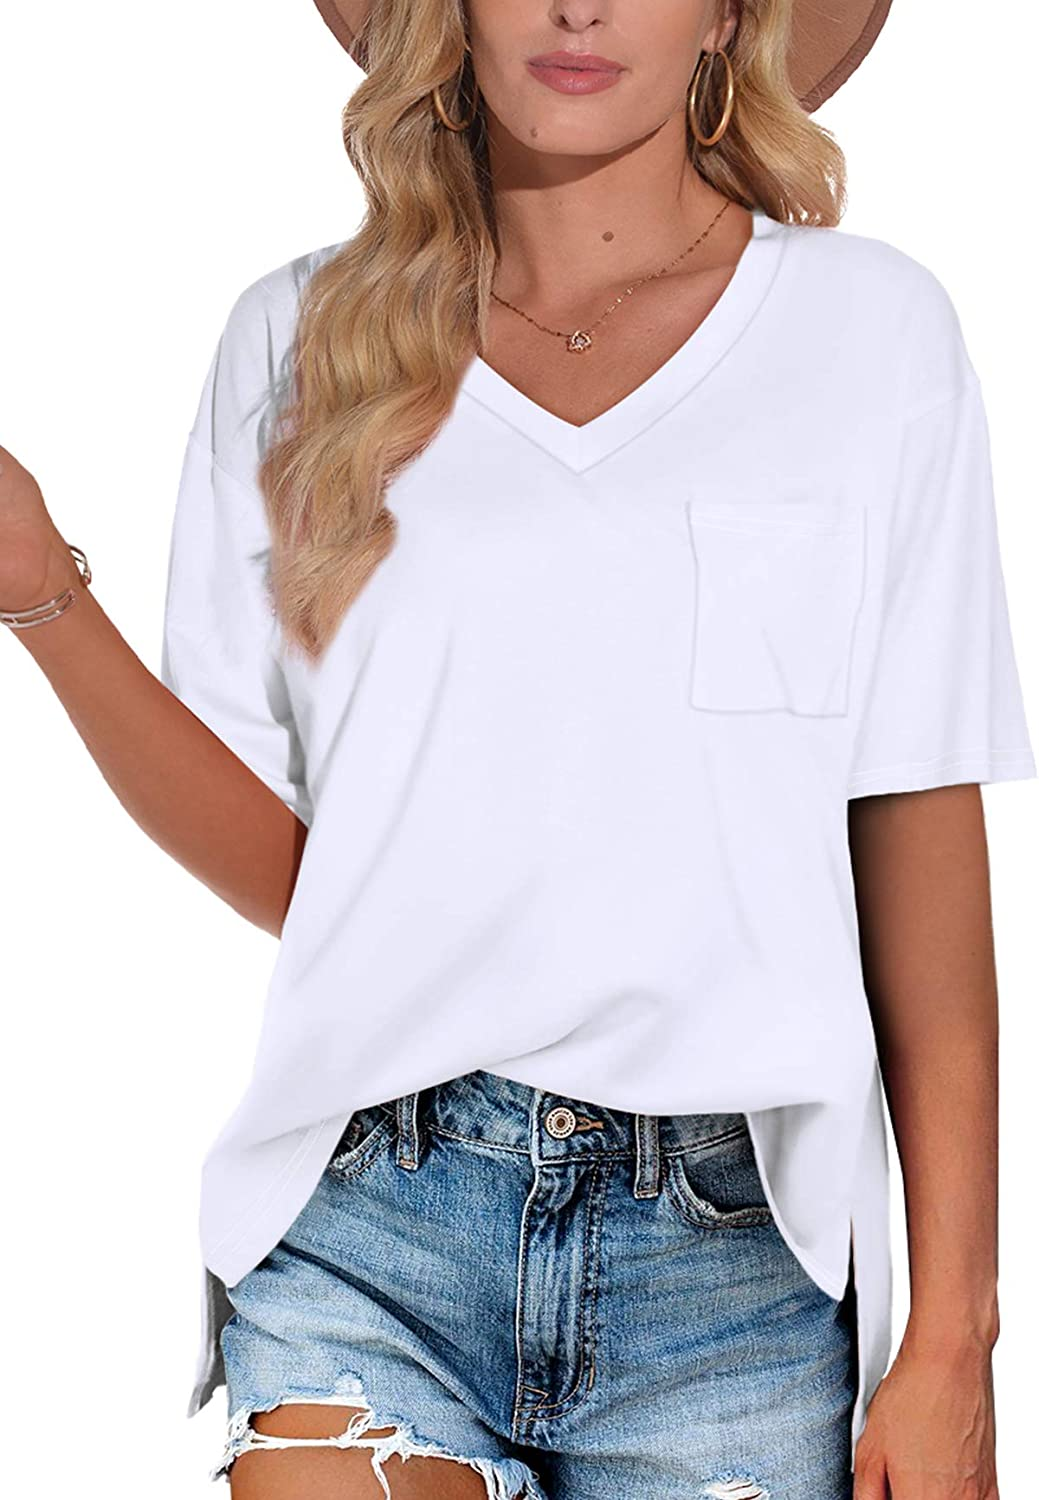 XIEERDUO Women's Summer T Shirts Max 56% OFF Short Cute safety V Sleeve Neck Pocket